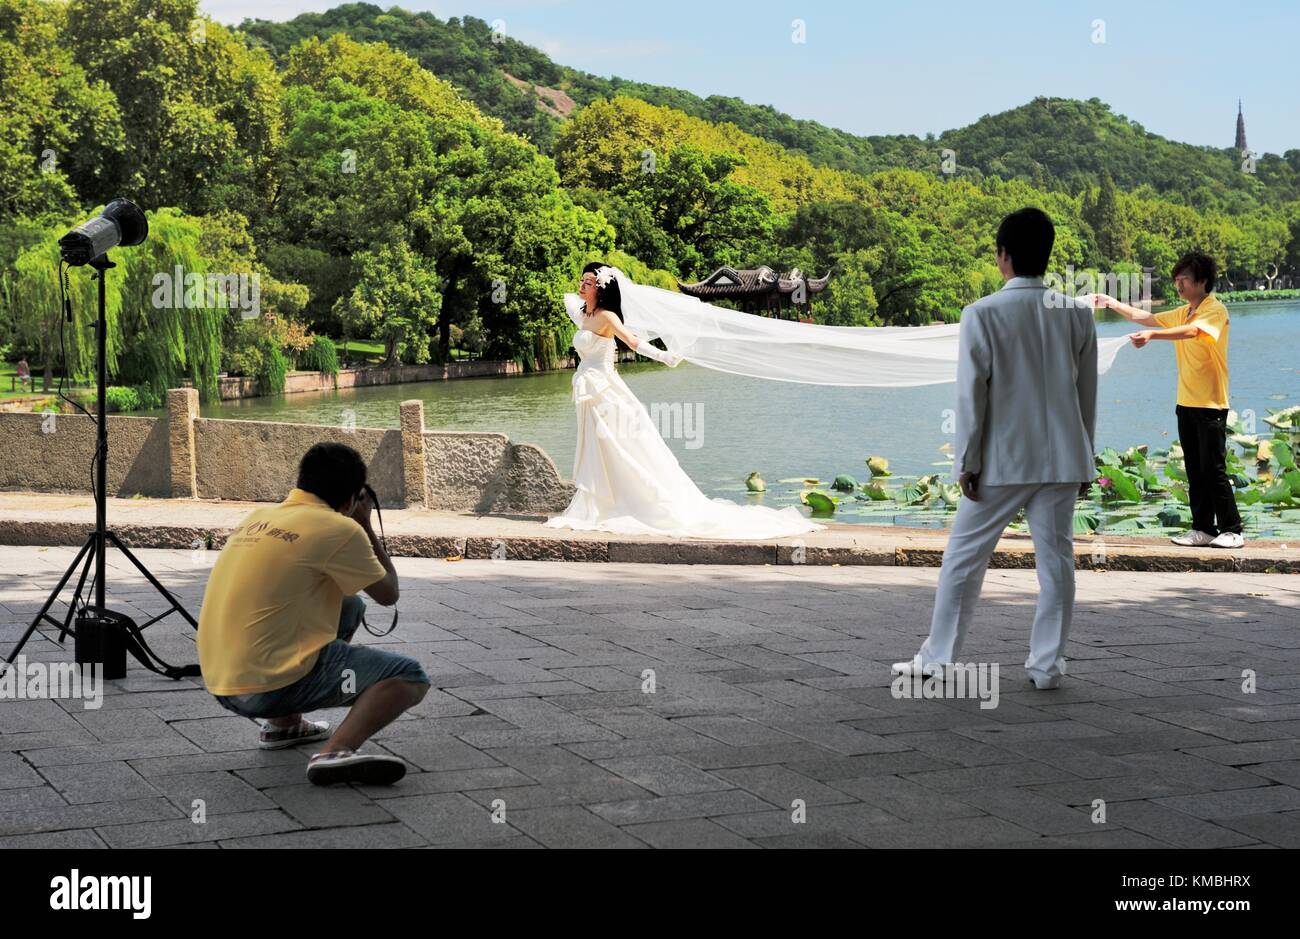 Hangzhou, Zhejiang, China.  Taking wedding photographs on the scenic shores of West Lake in the city of Hangzhou - Stock Image